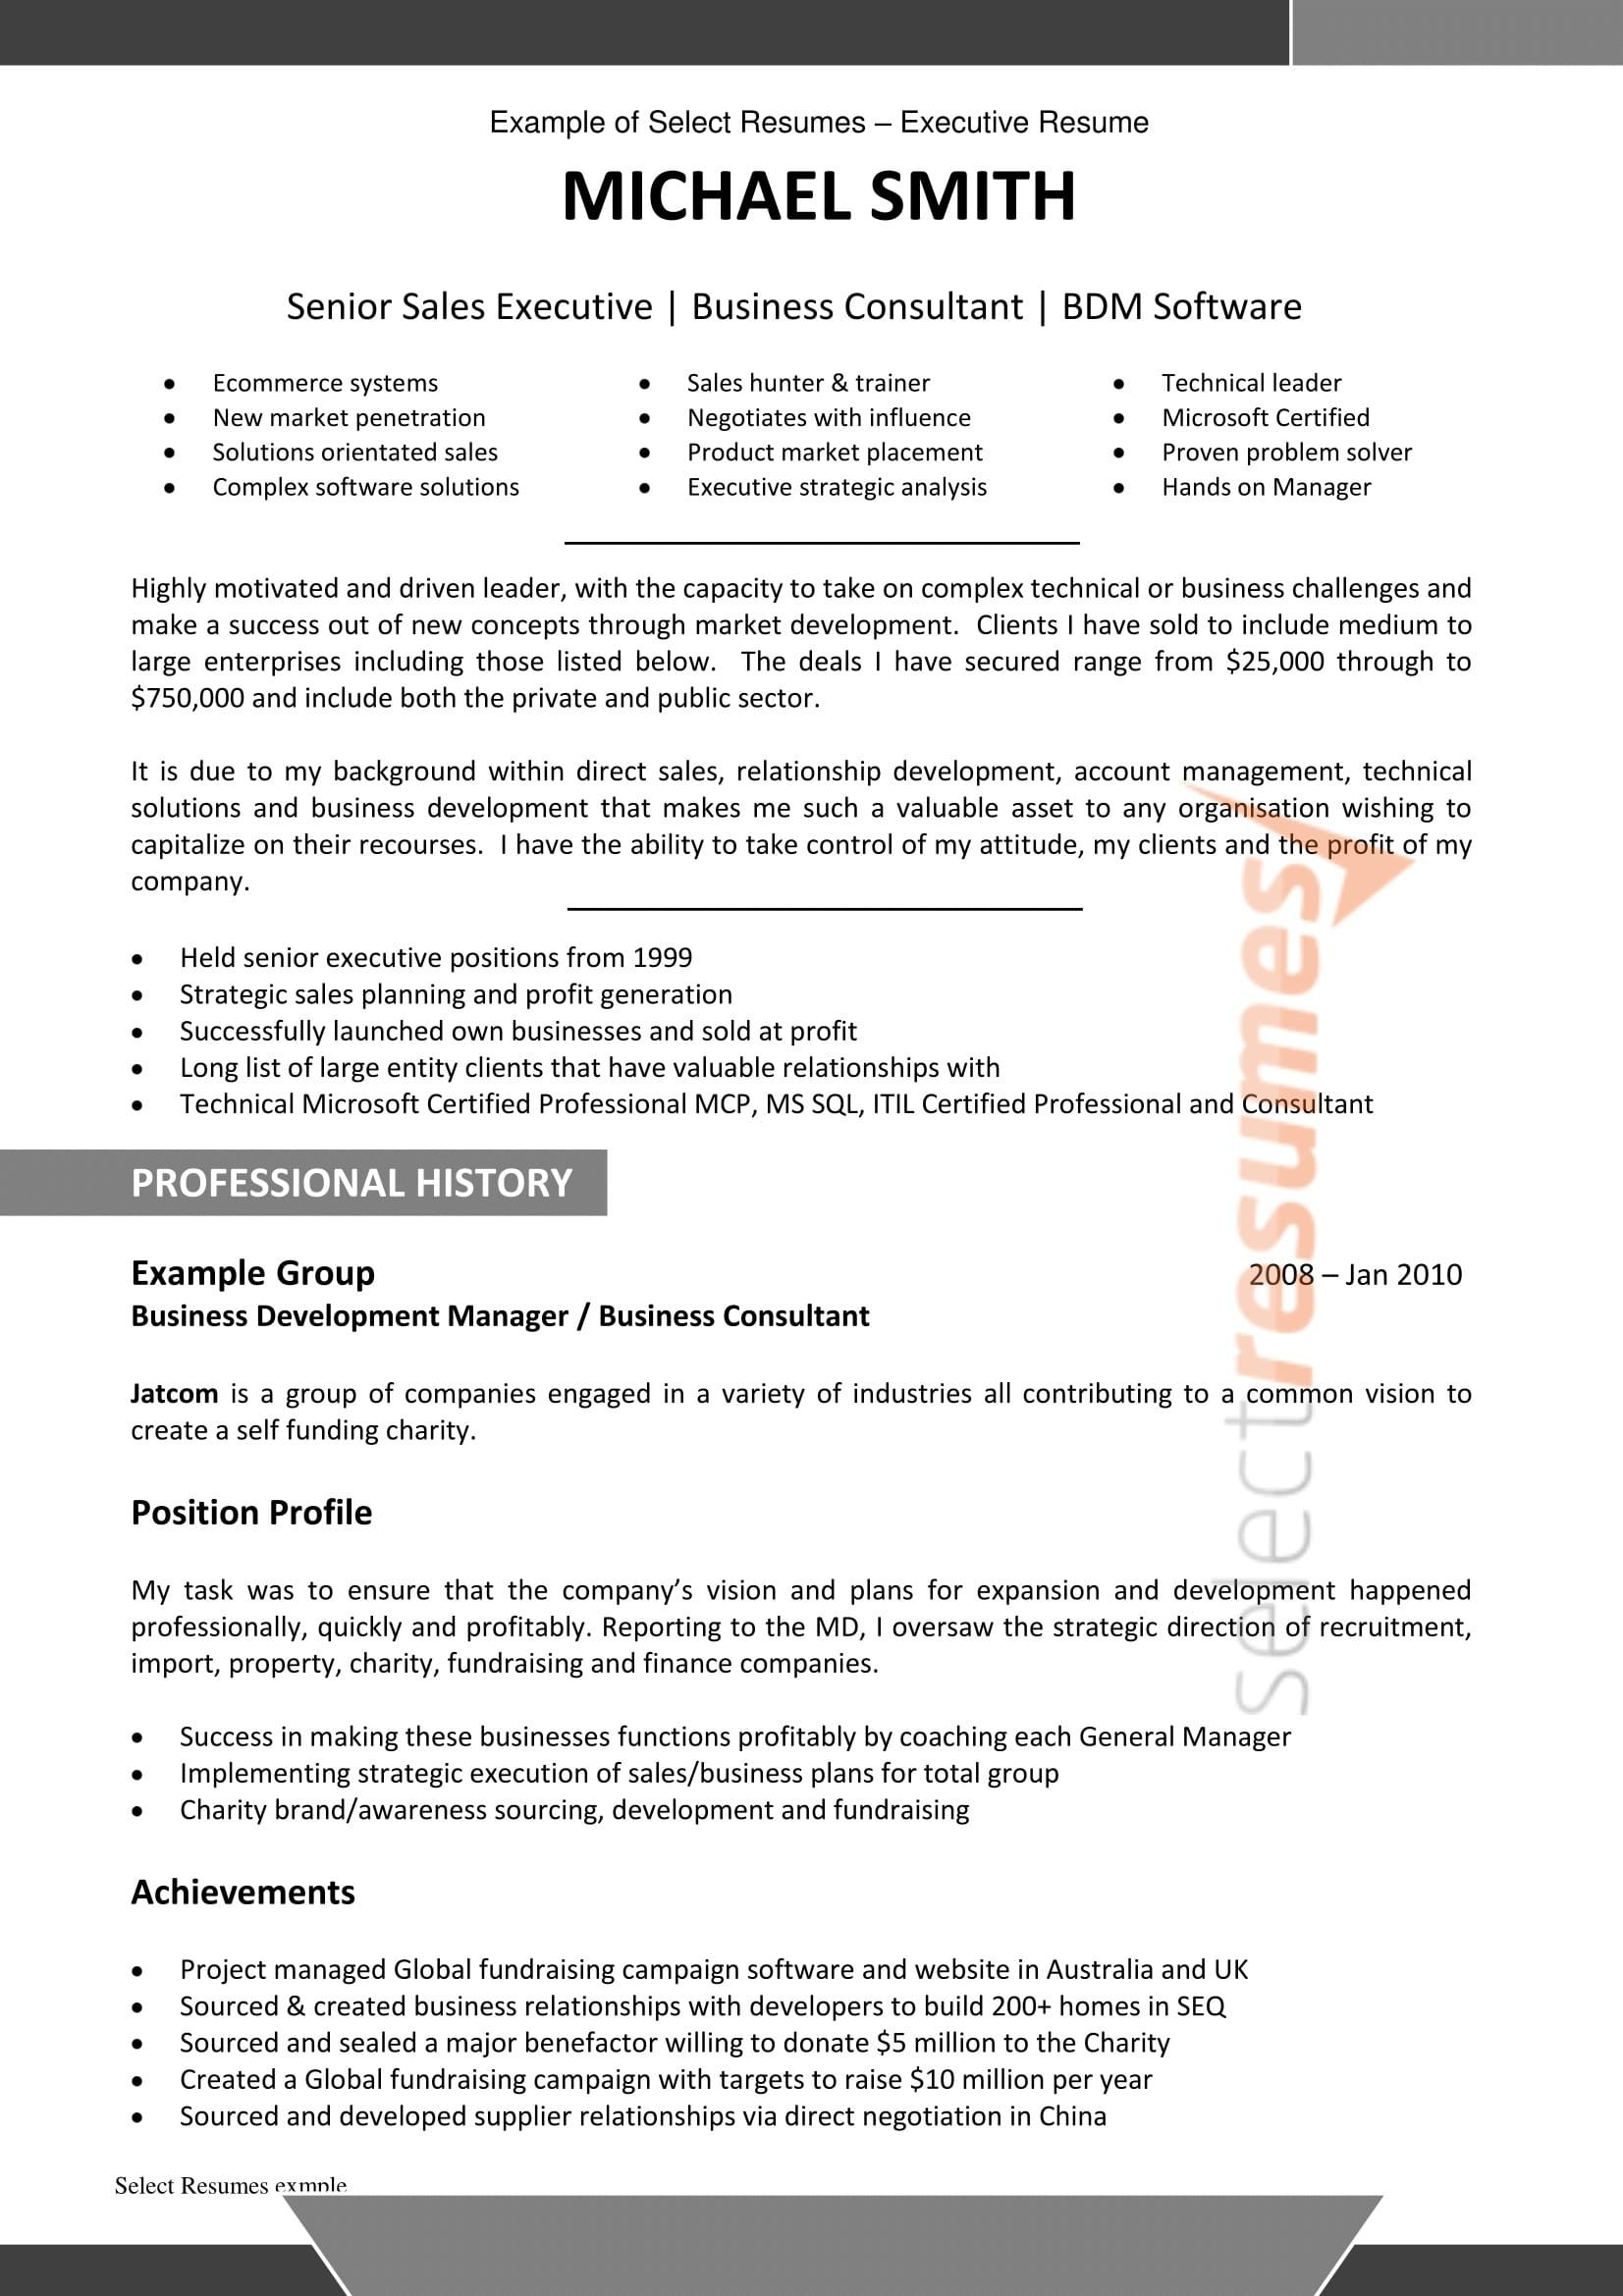 professional resume writing service top and essays services trusted by students writers Resume Professional Resume Writers